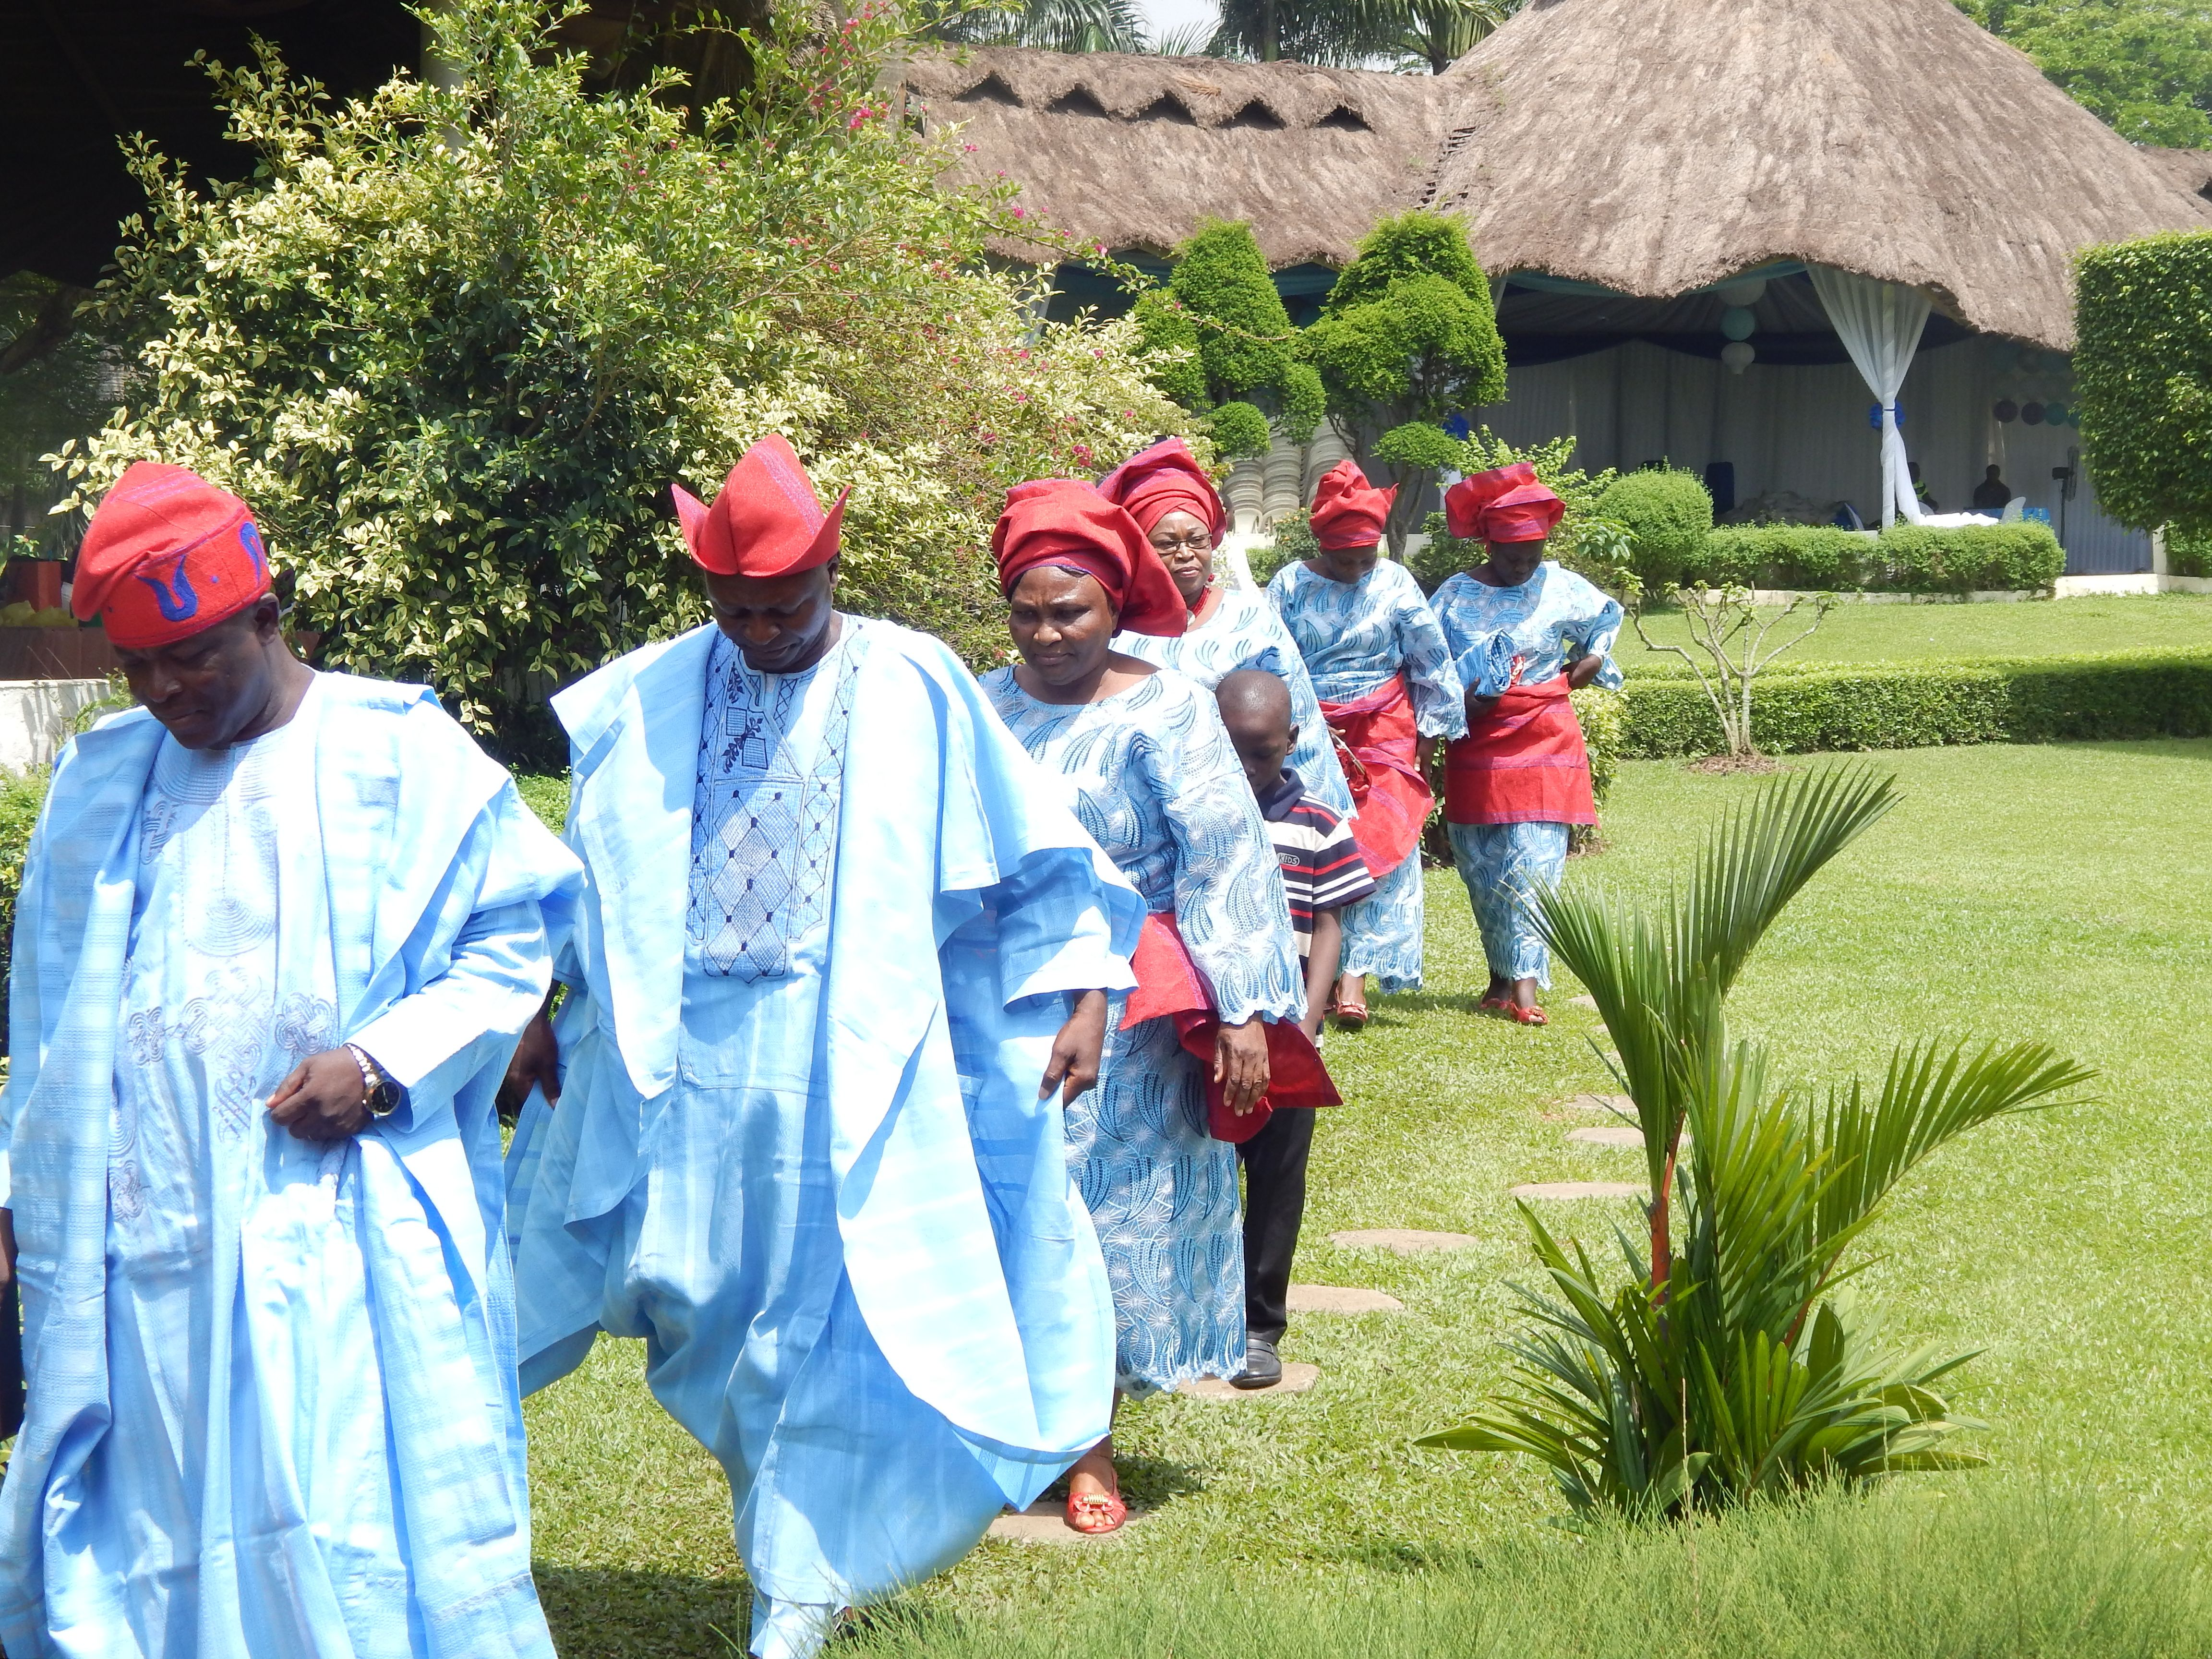 garden party wedding venues melbourne%0A JHALOBIA GARDEN NIGERIA   GUESTS IN ASOEBI ARRIVE AT THE JHALOBIA GARDEN  WEDDING VENUE